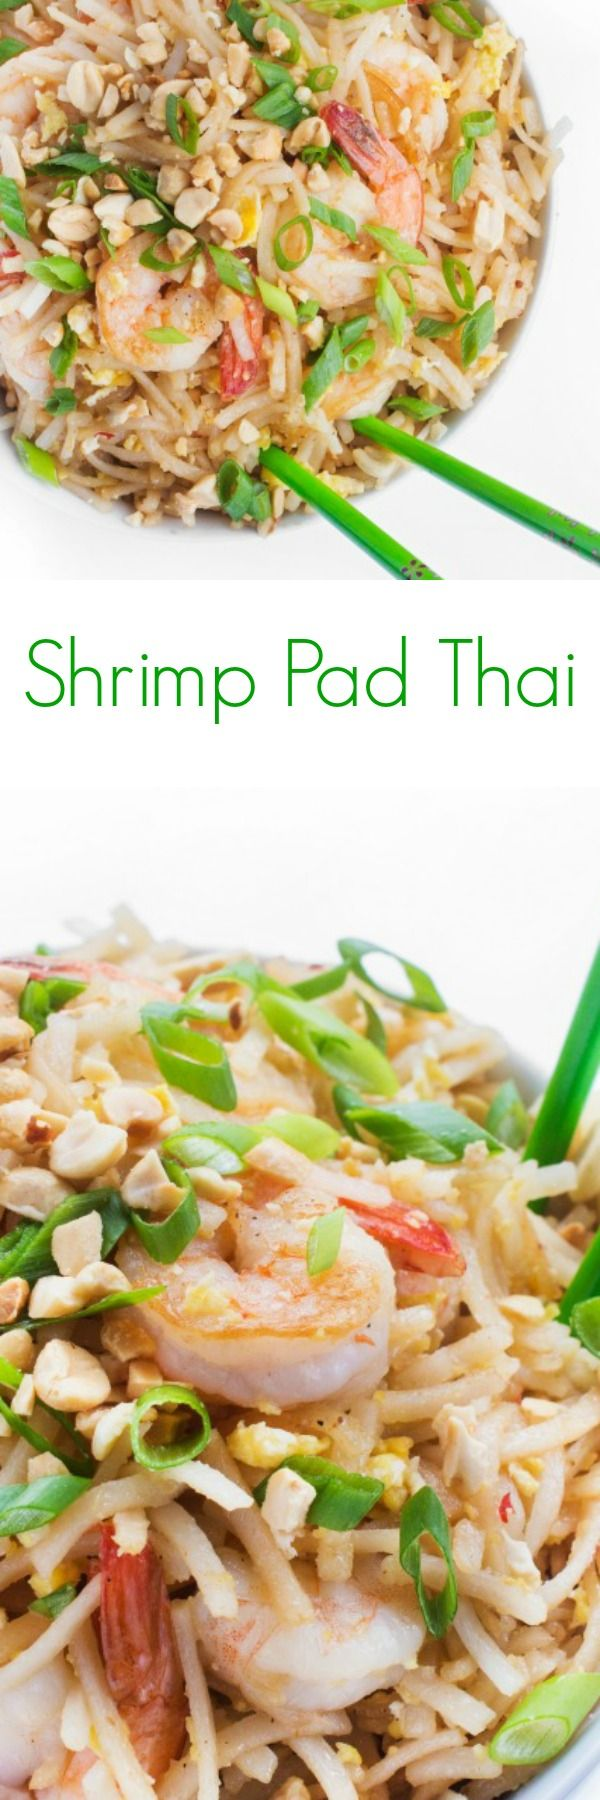 Shrimp Pad Thai - A fast and easy weeknight dinner recipe, this Shrimp Pad Thai is a lighter version of the take-out classic.